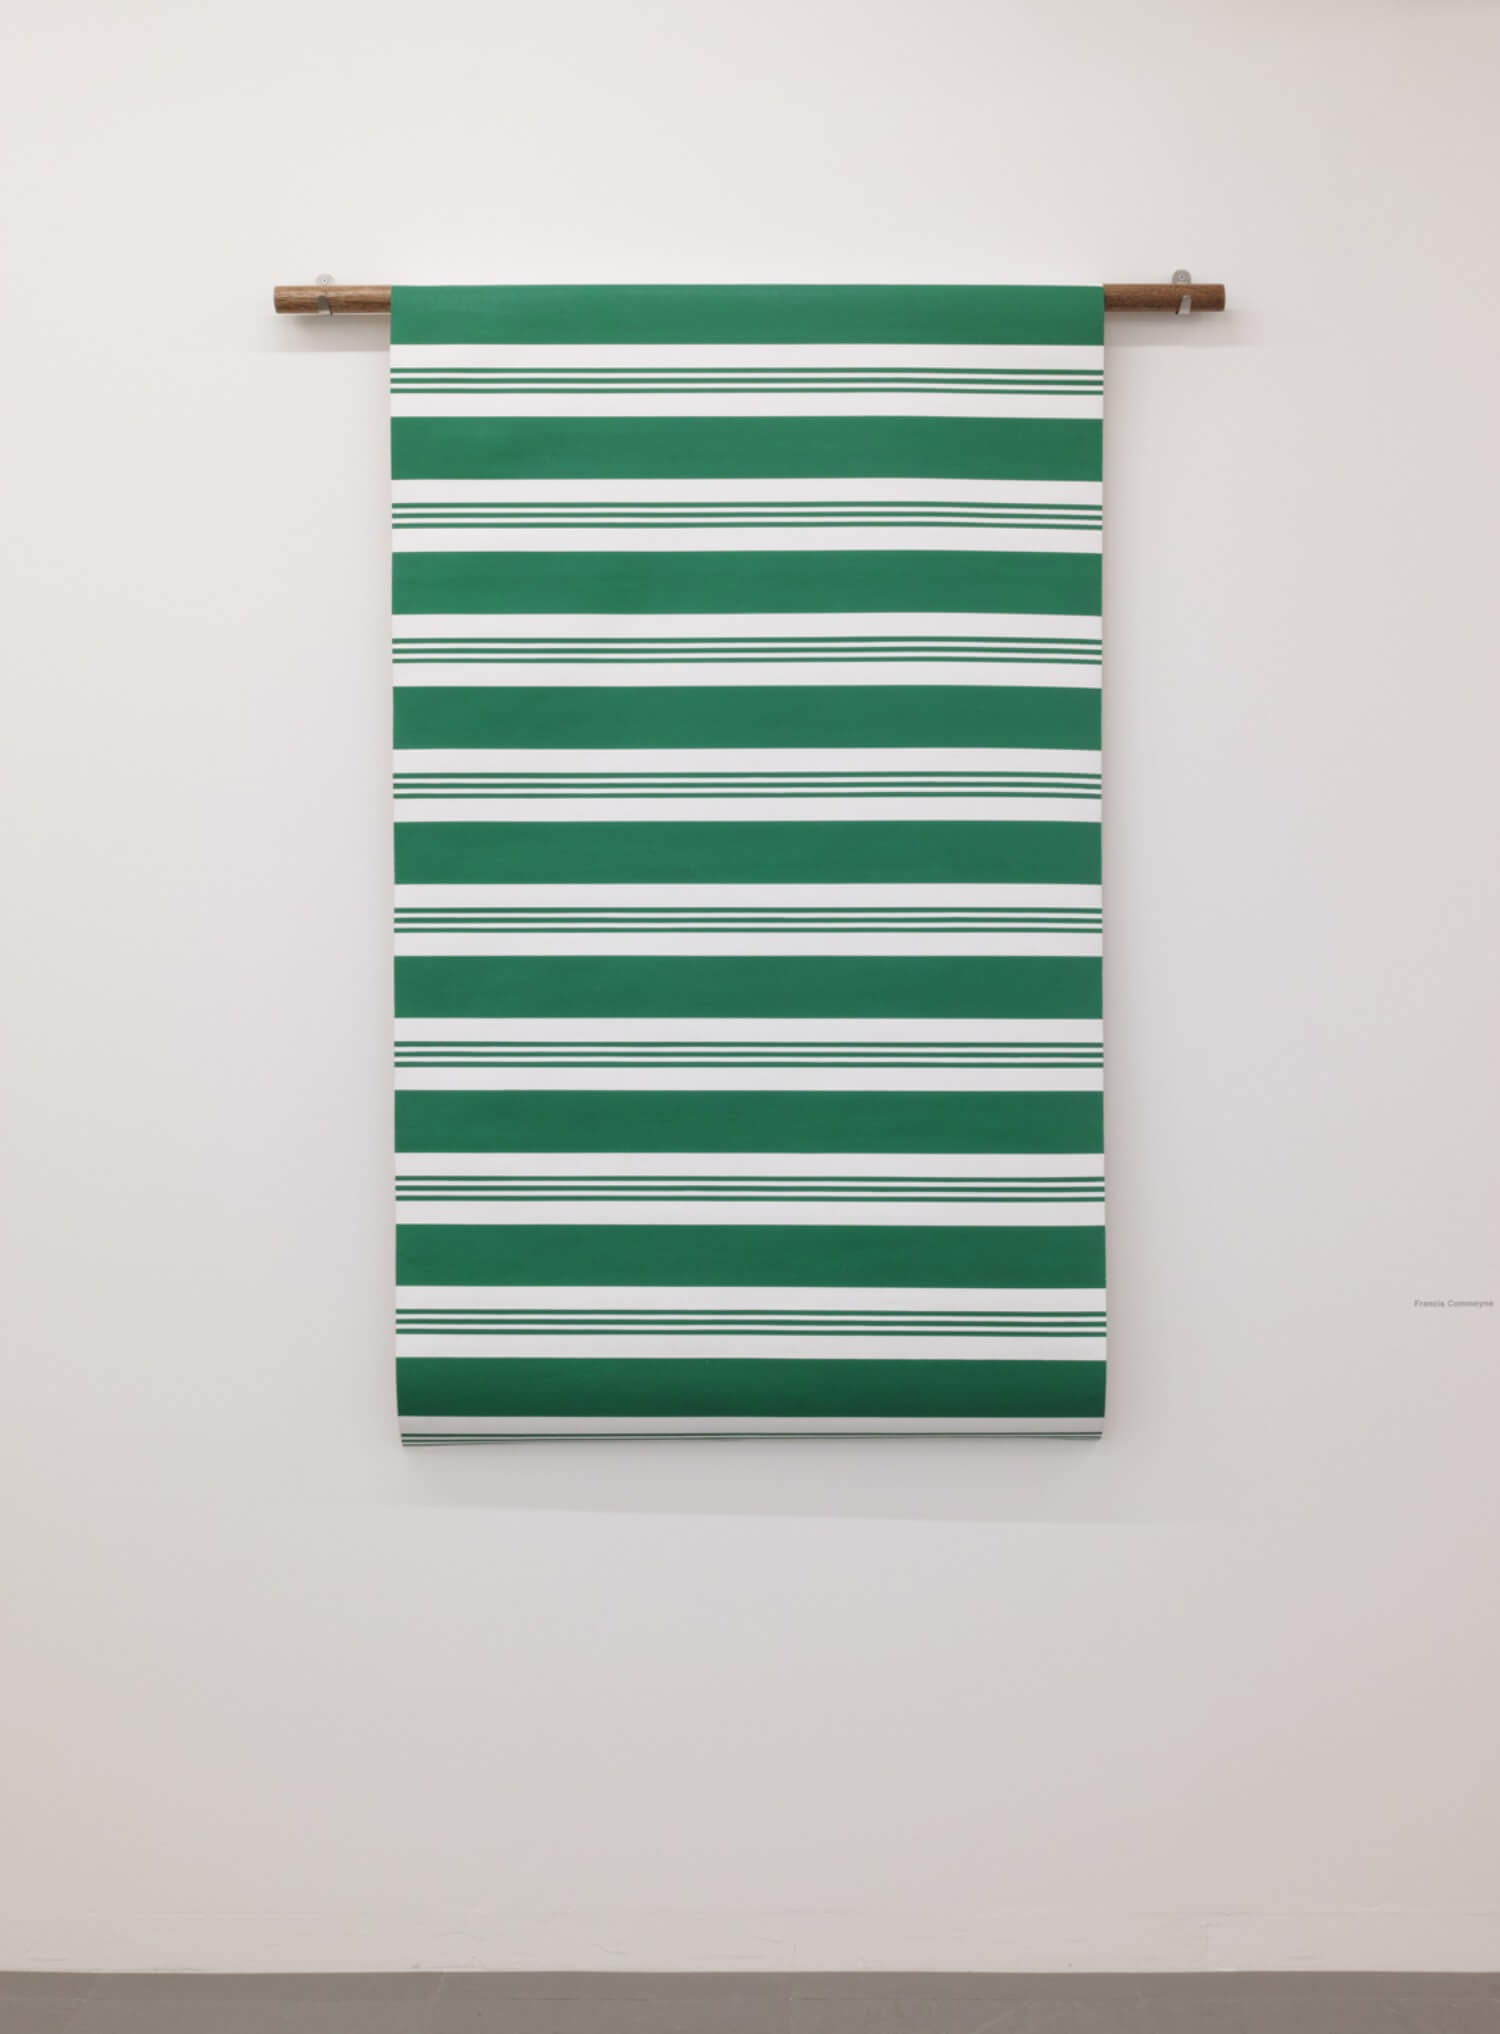 Francis Commeyne<br>STUPED TARP SENES(GREEN) / Acrylic on canvas and wooden dowel, 158 x 122 cm, 2016